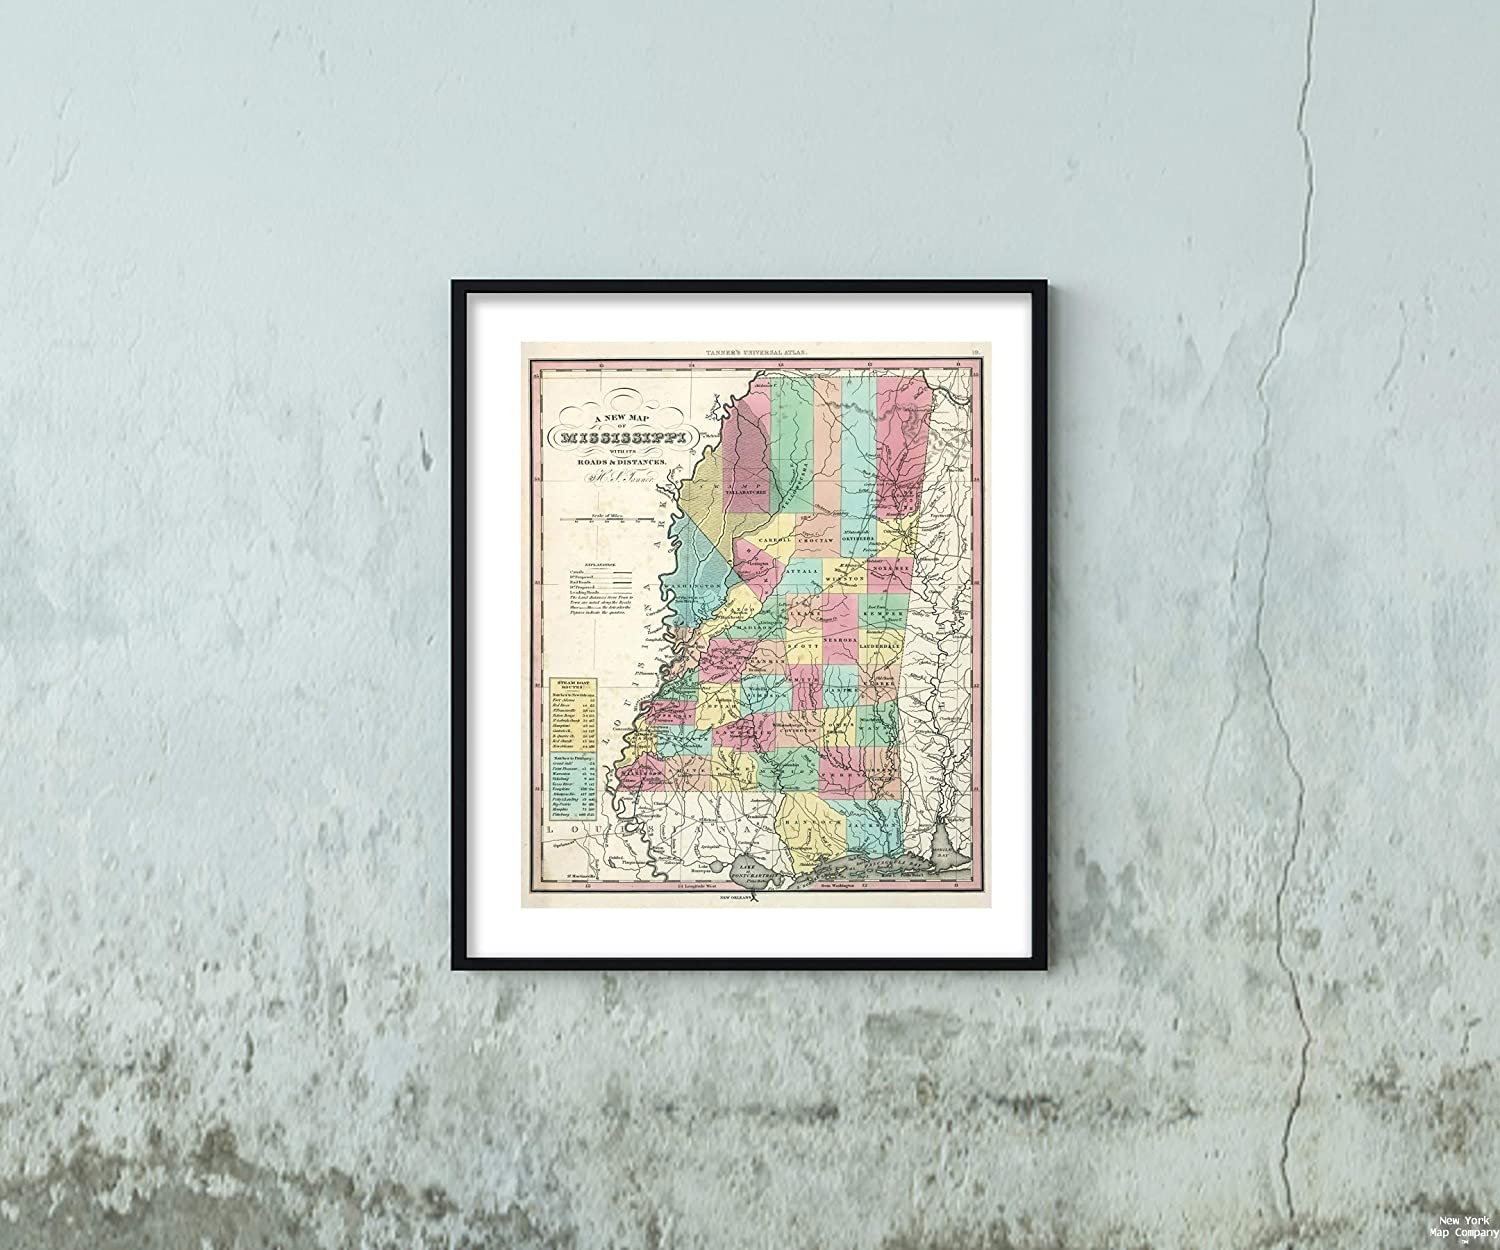 Map|World Atlas, Mississippi. 1834|Historic Antique Vintage Reprint|Size: 20x24|Ready to Frame